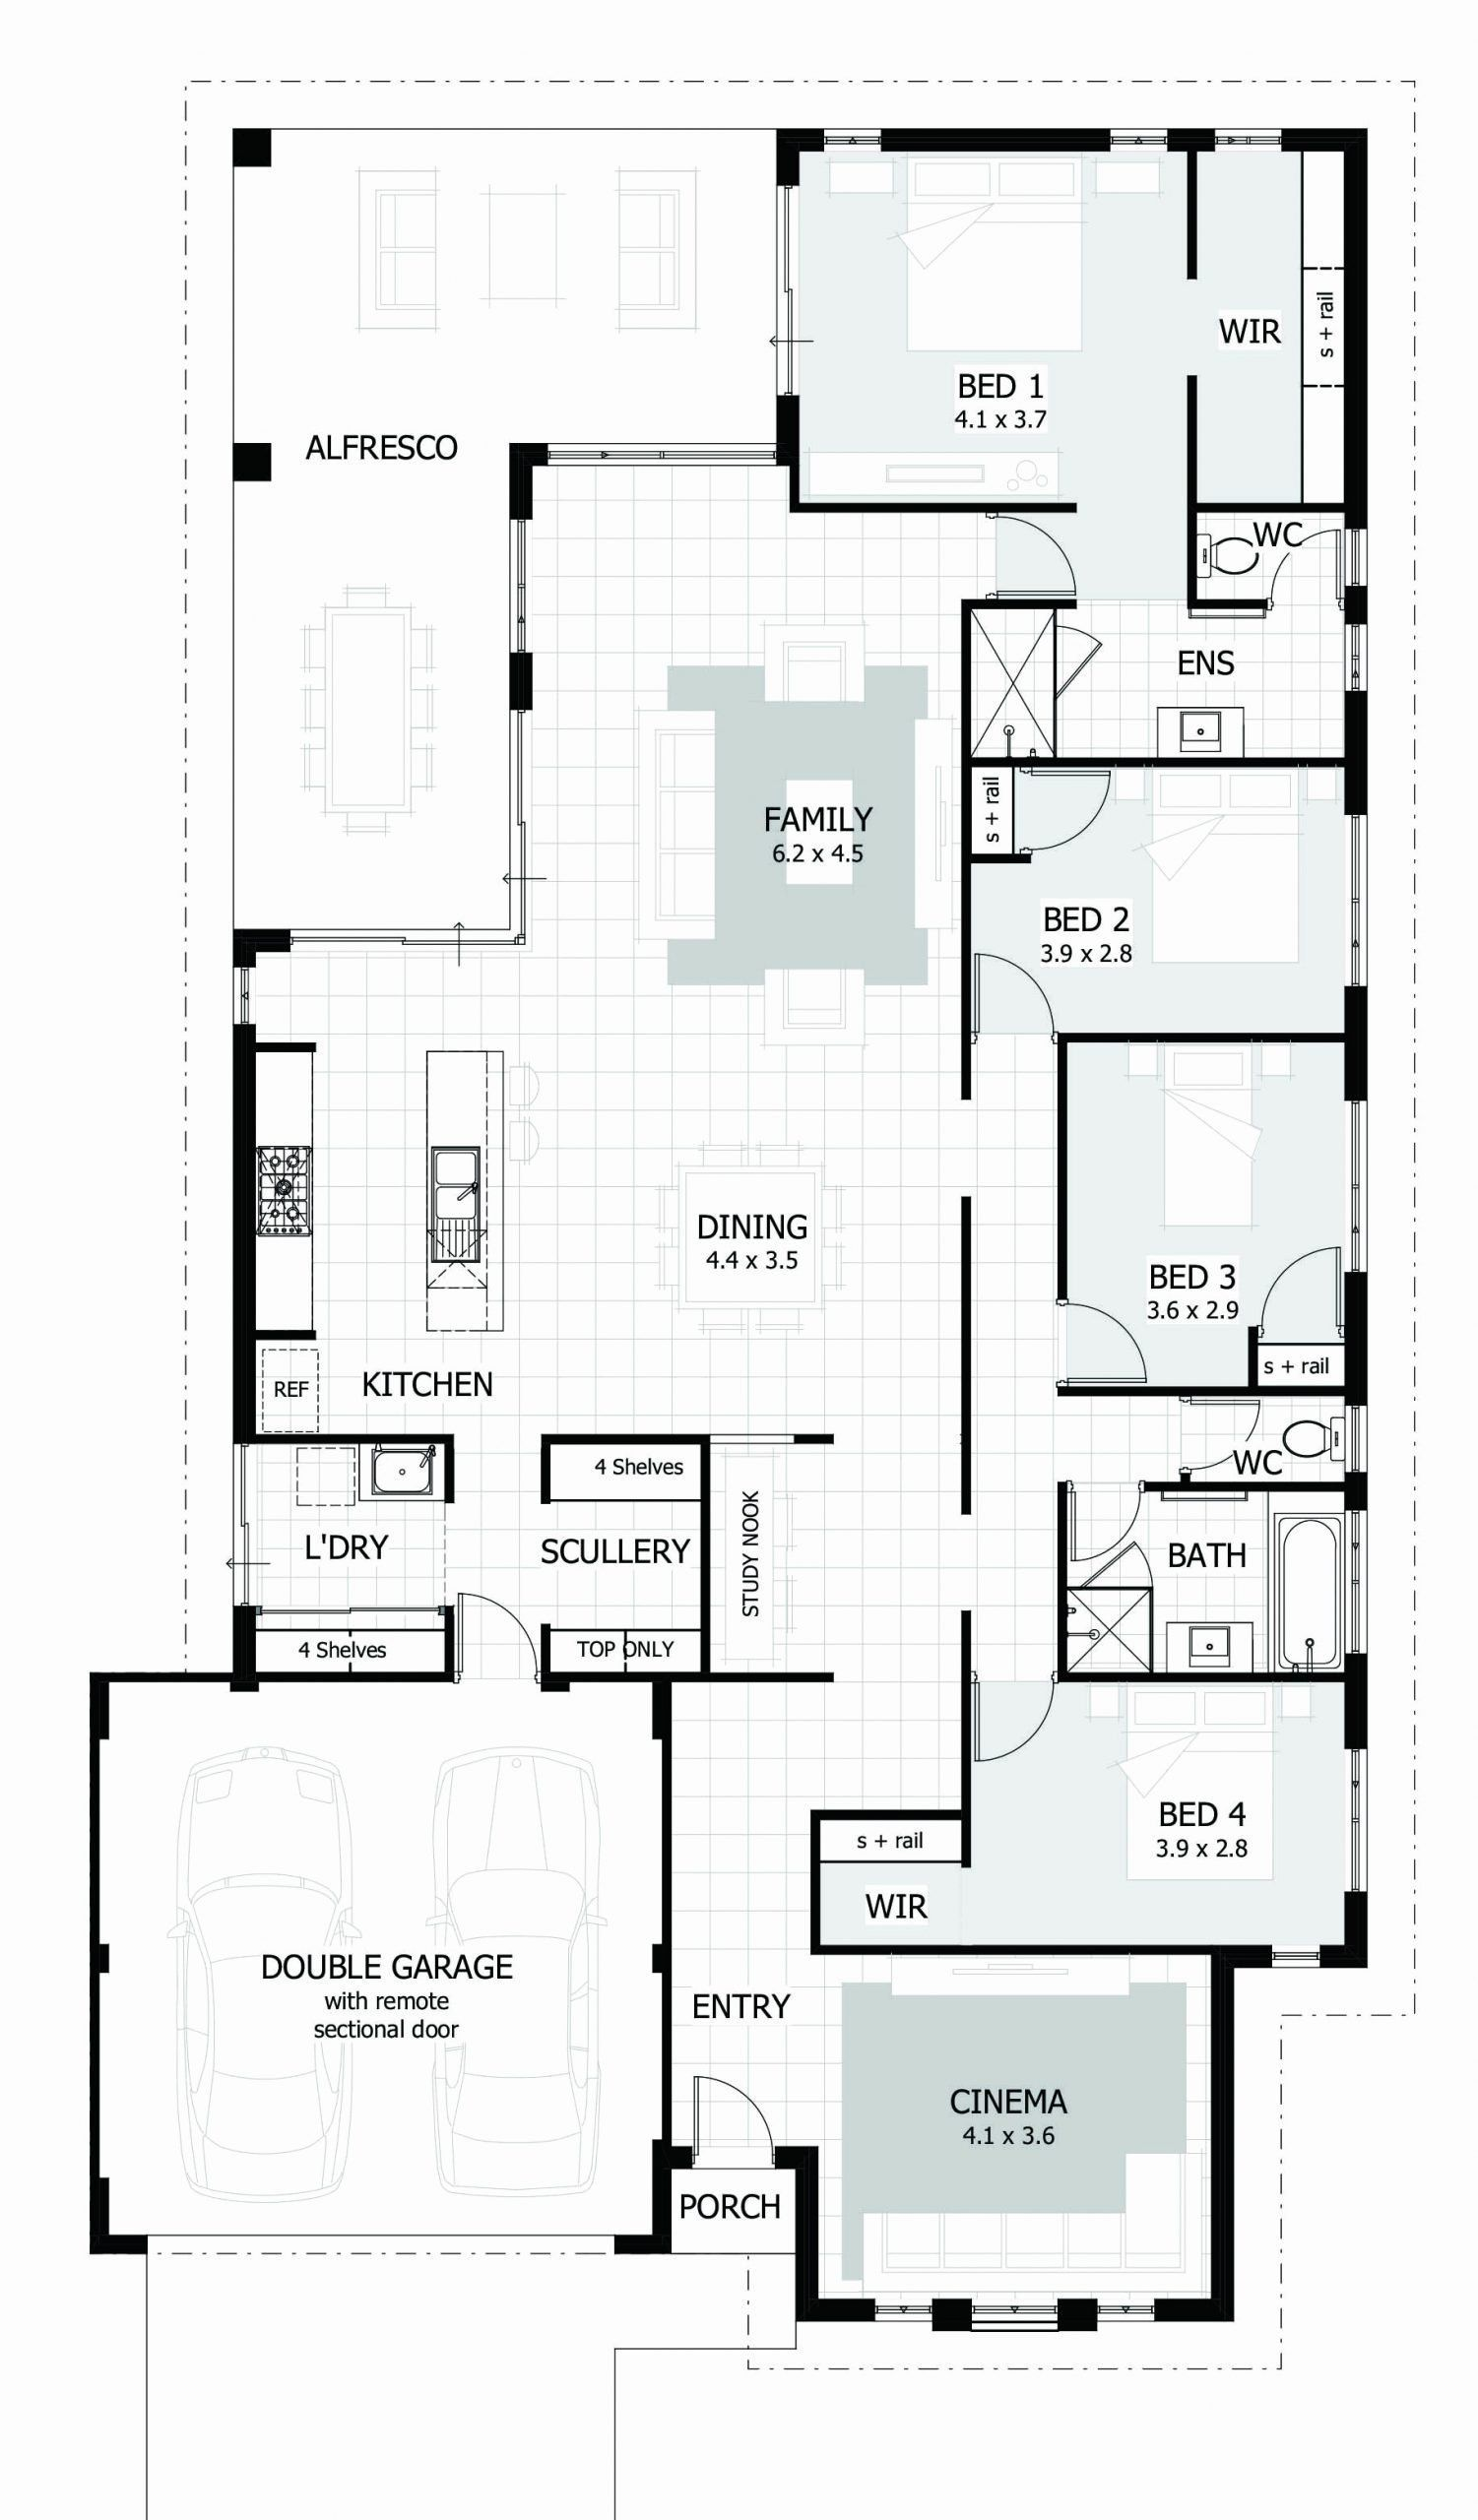 4 Bedroom Home Floor Plans In 2020 Single Storey House Plans Bedroom House Plans 4 Bedroom House Plans